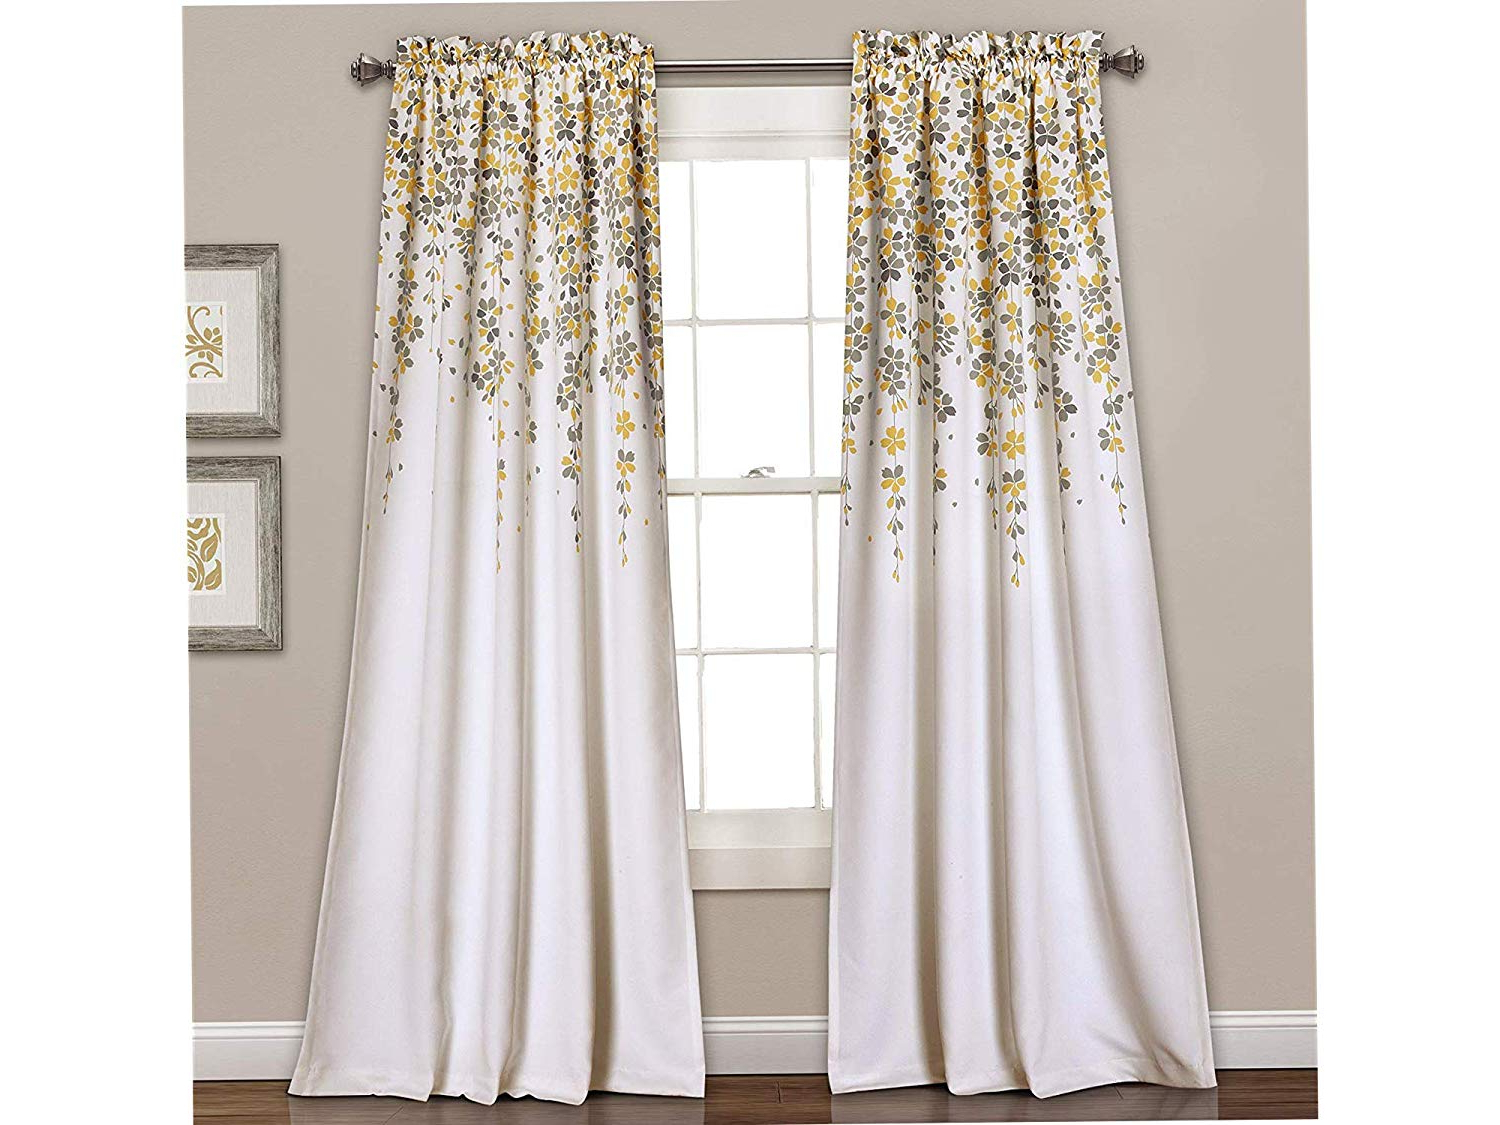 Weeping Flowers Room Darkening Curtain Panel Pairs Inside Best And Newest Amazon: Lush Dеcоr Home Decor Weeping Flowers Room (View 6 of 20)